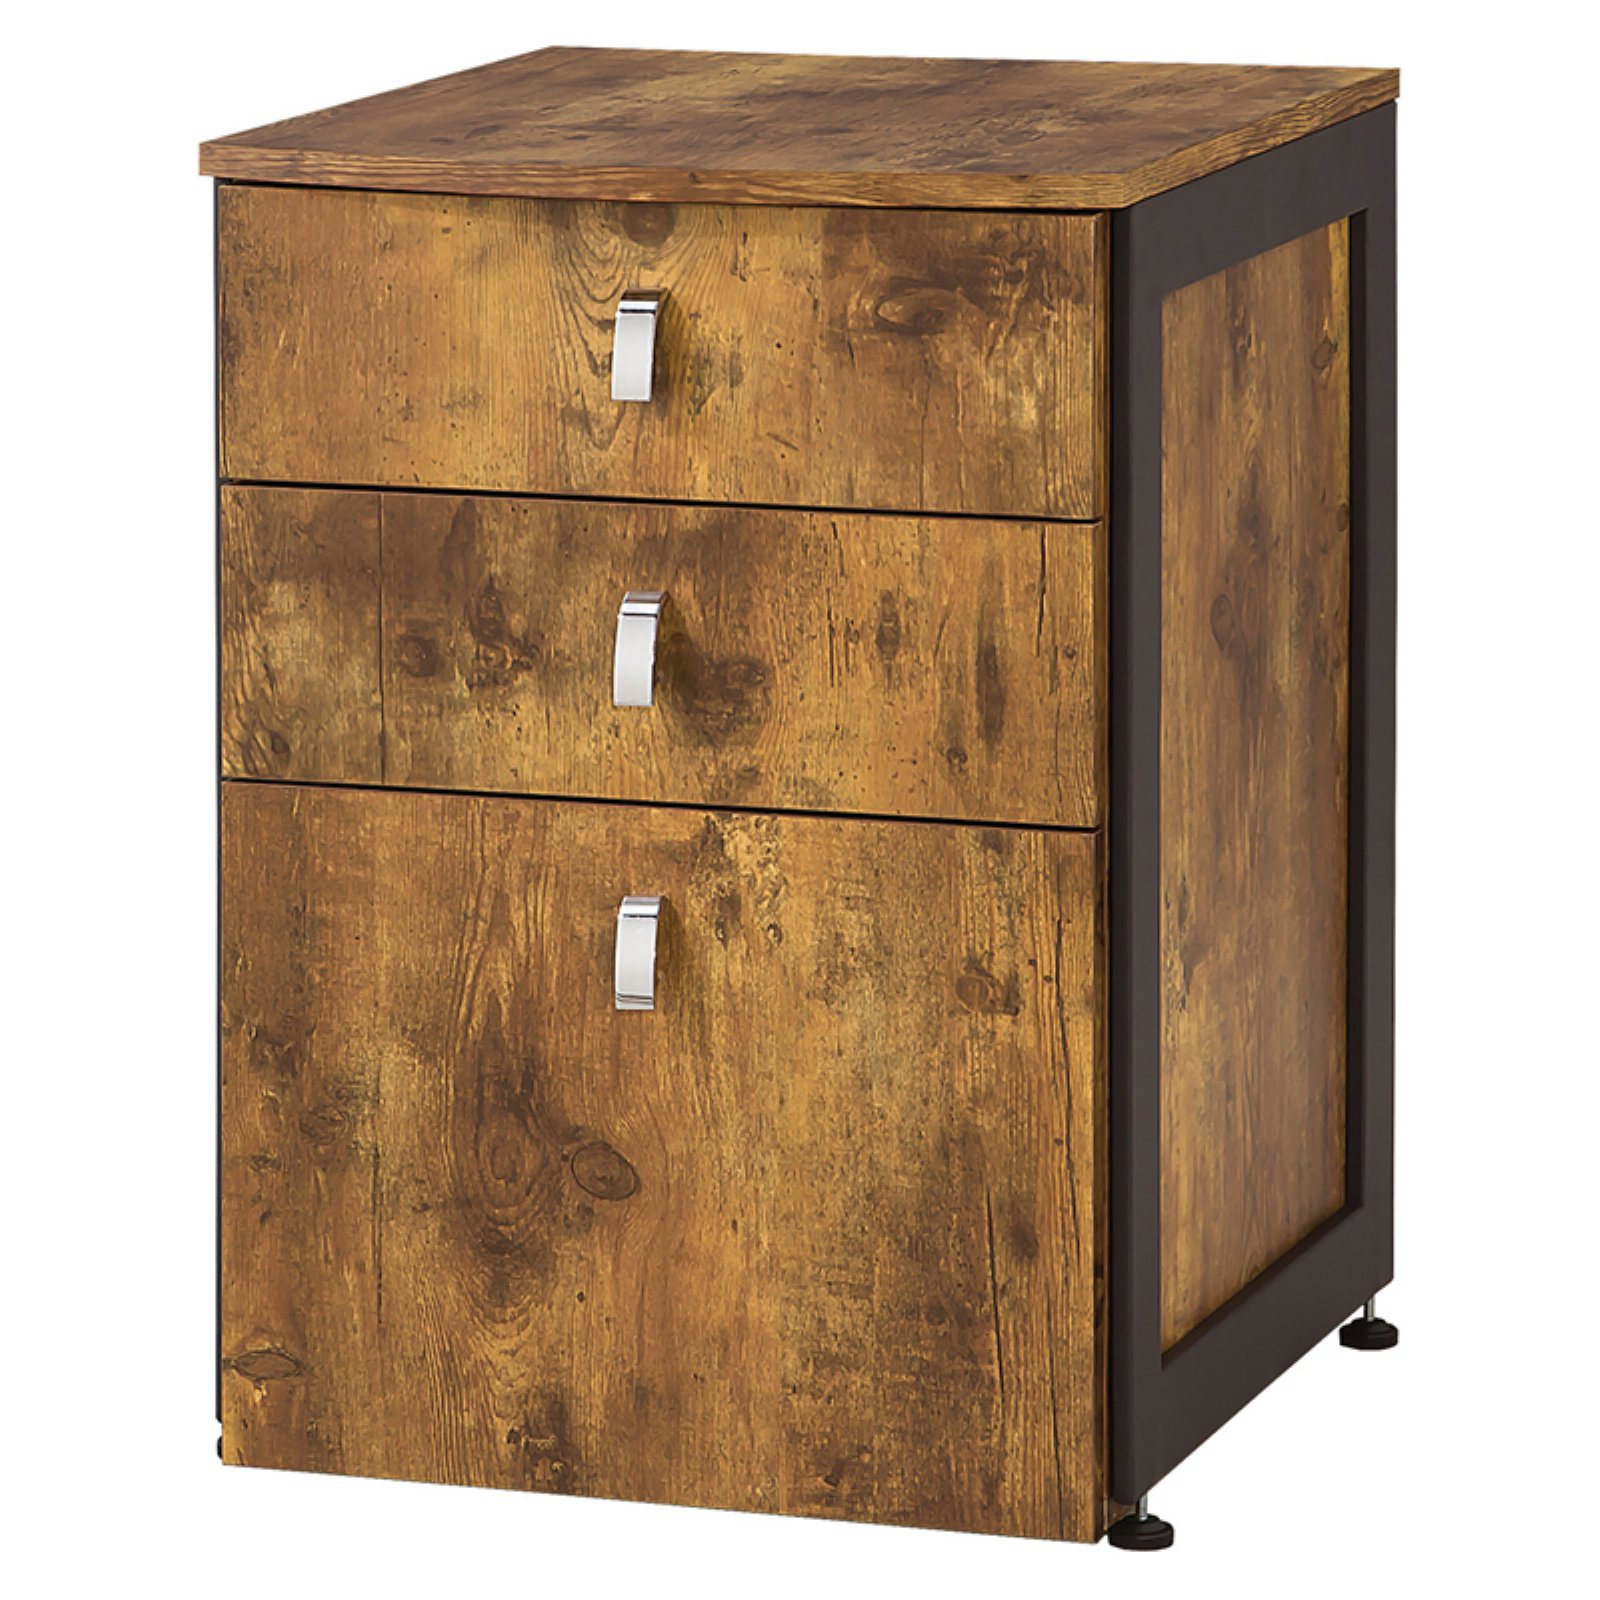 Coaster Furniture Estrella File Cabinet - Walmart.com